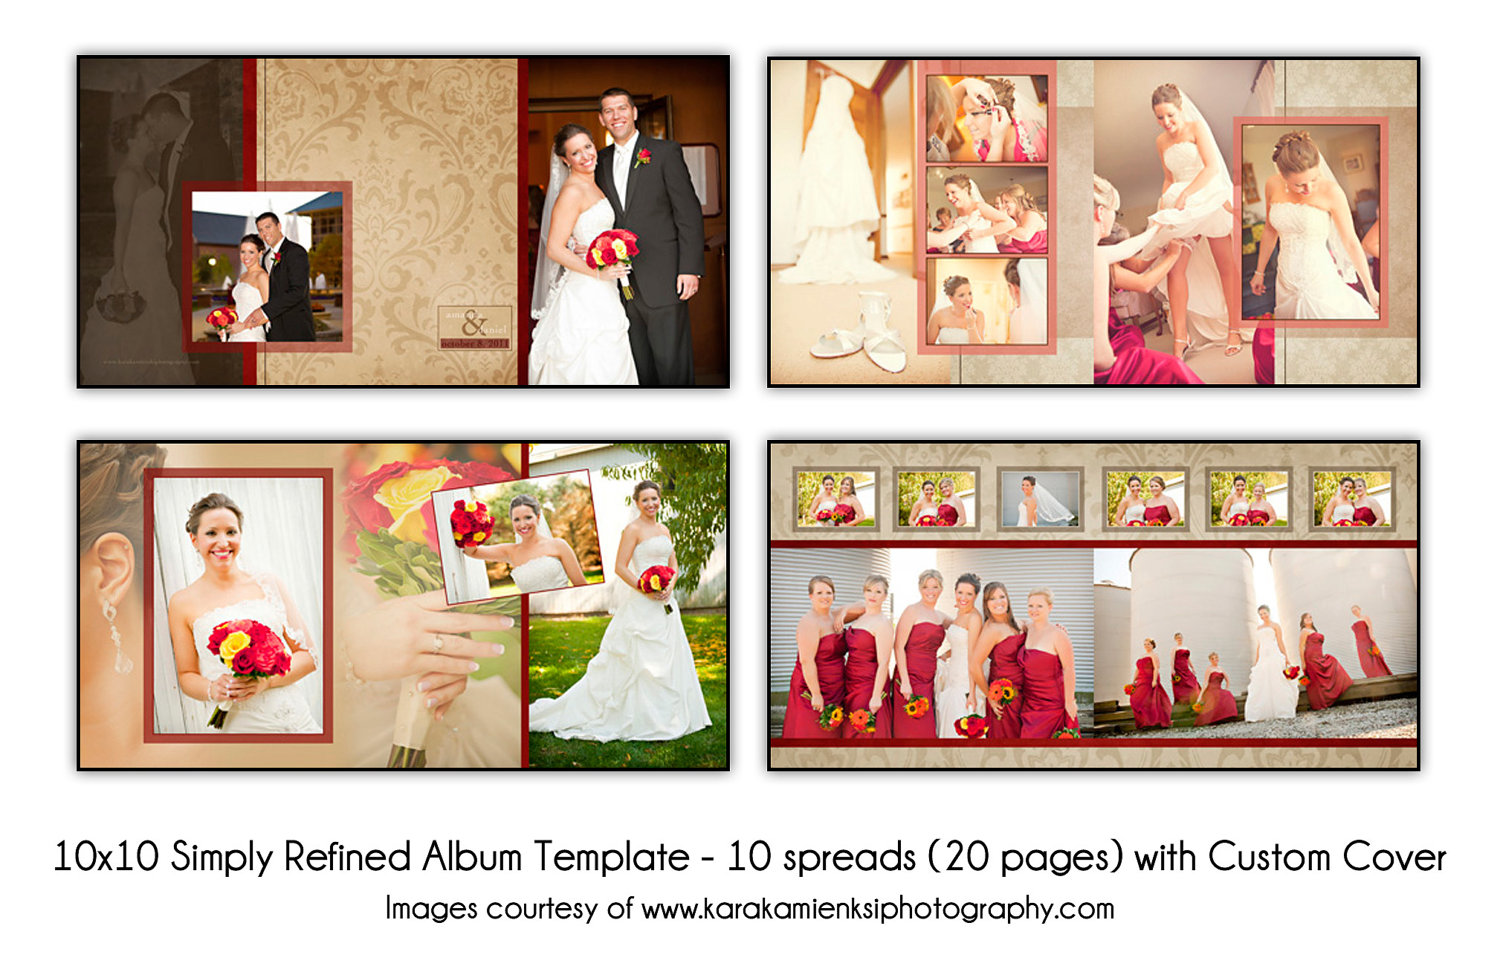 wedding photo album templates in photoshop - 15 free wedding album layout templates images wedding